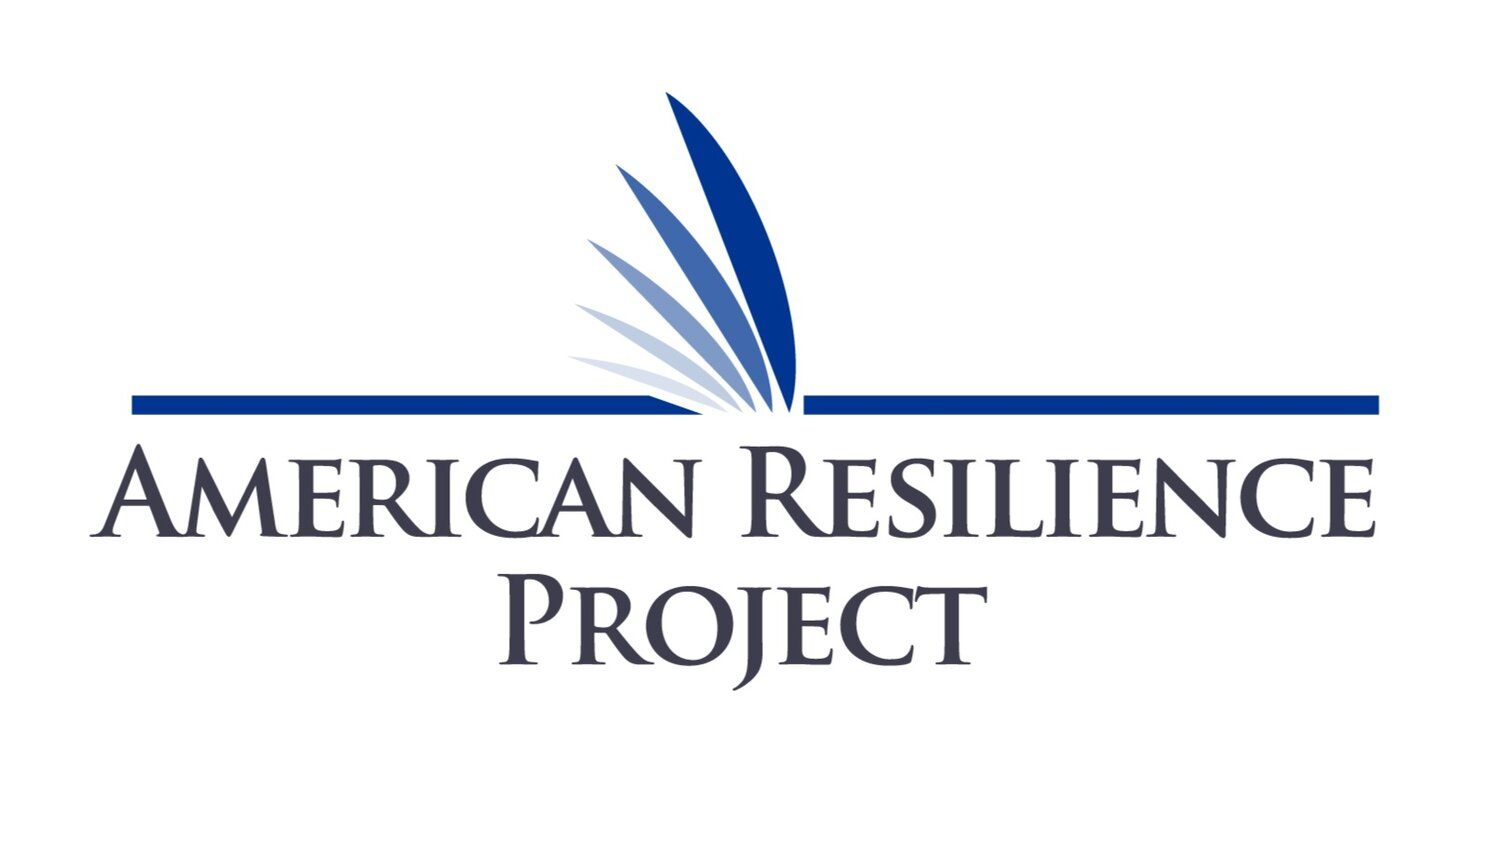 American Resilience Project